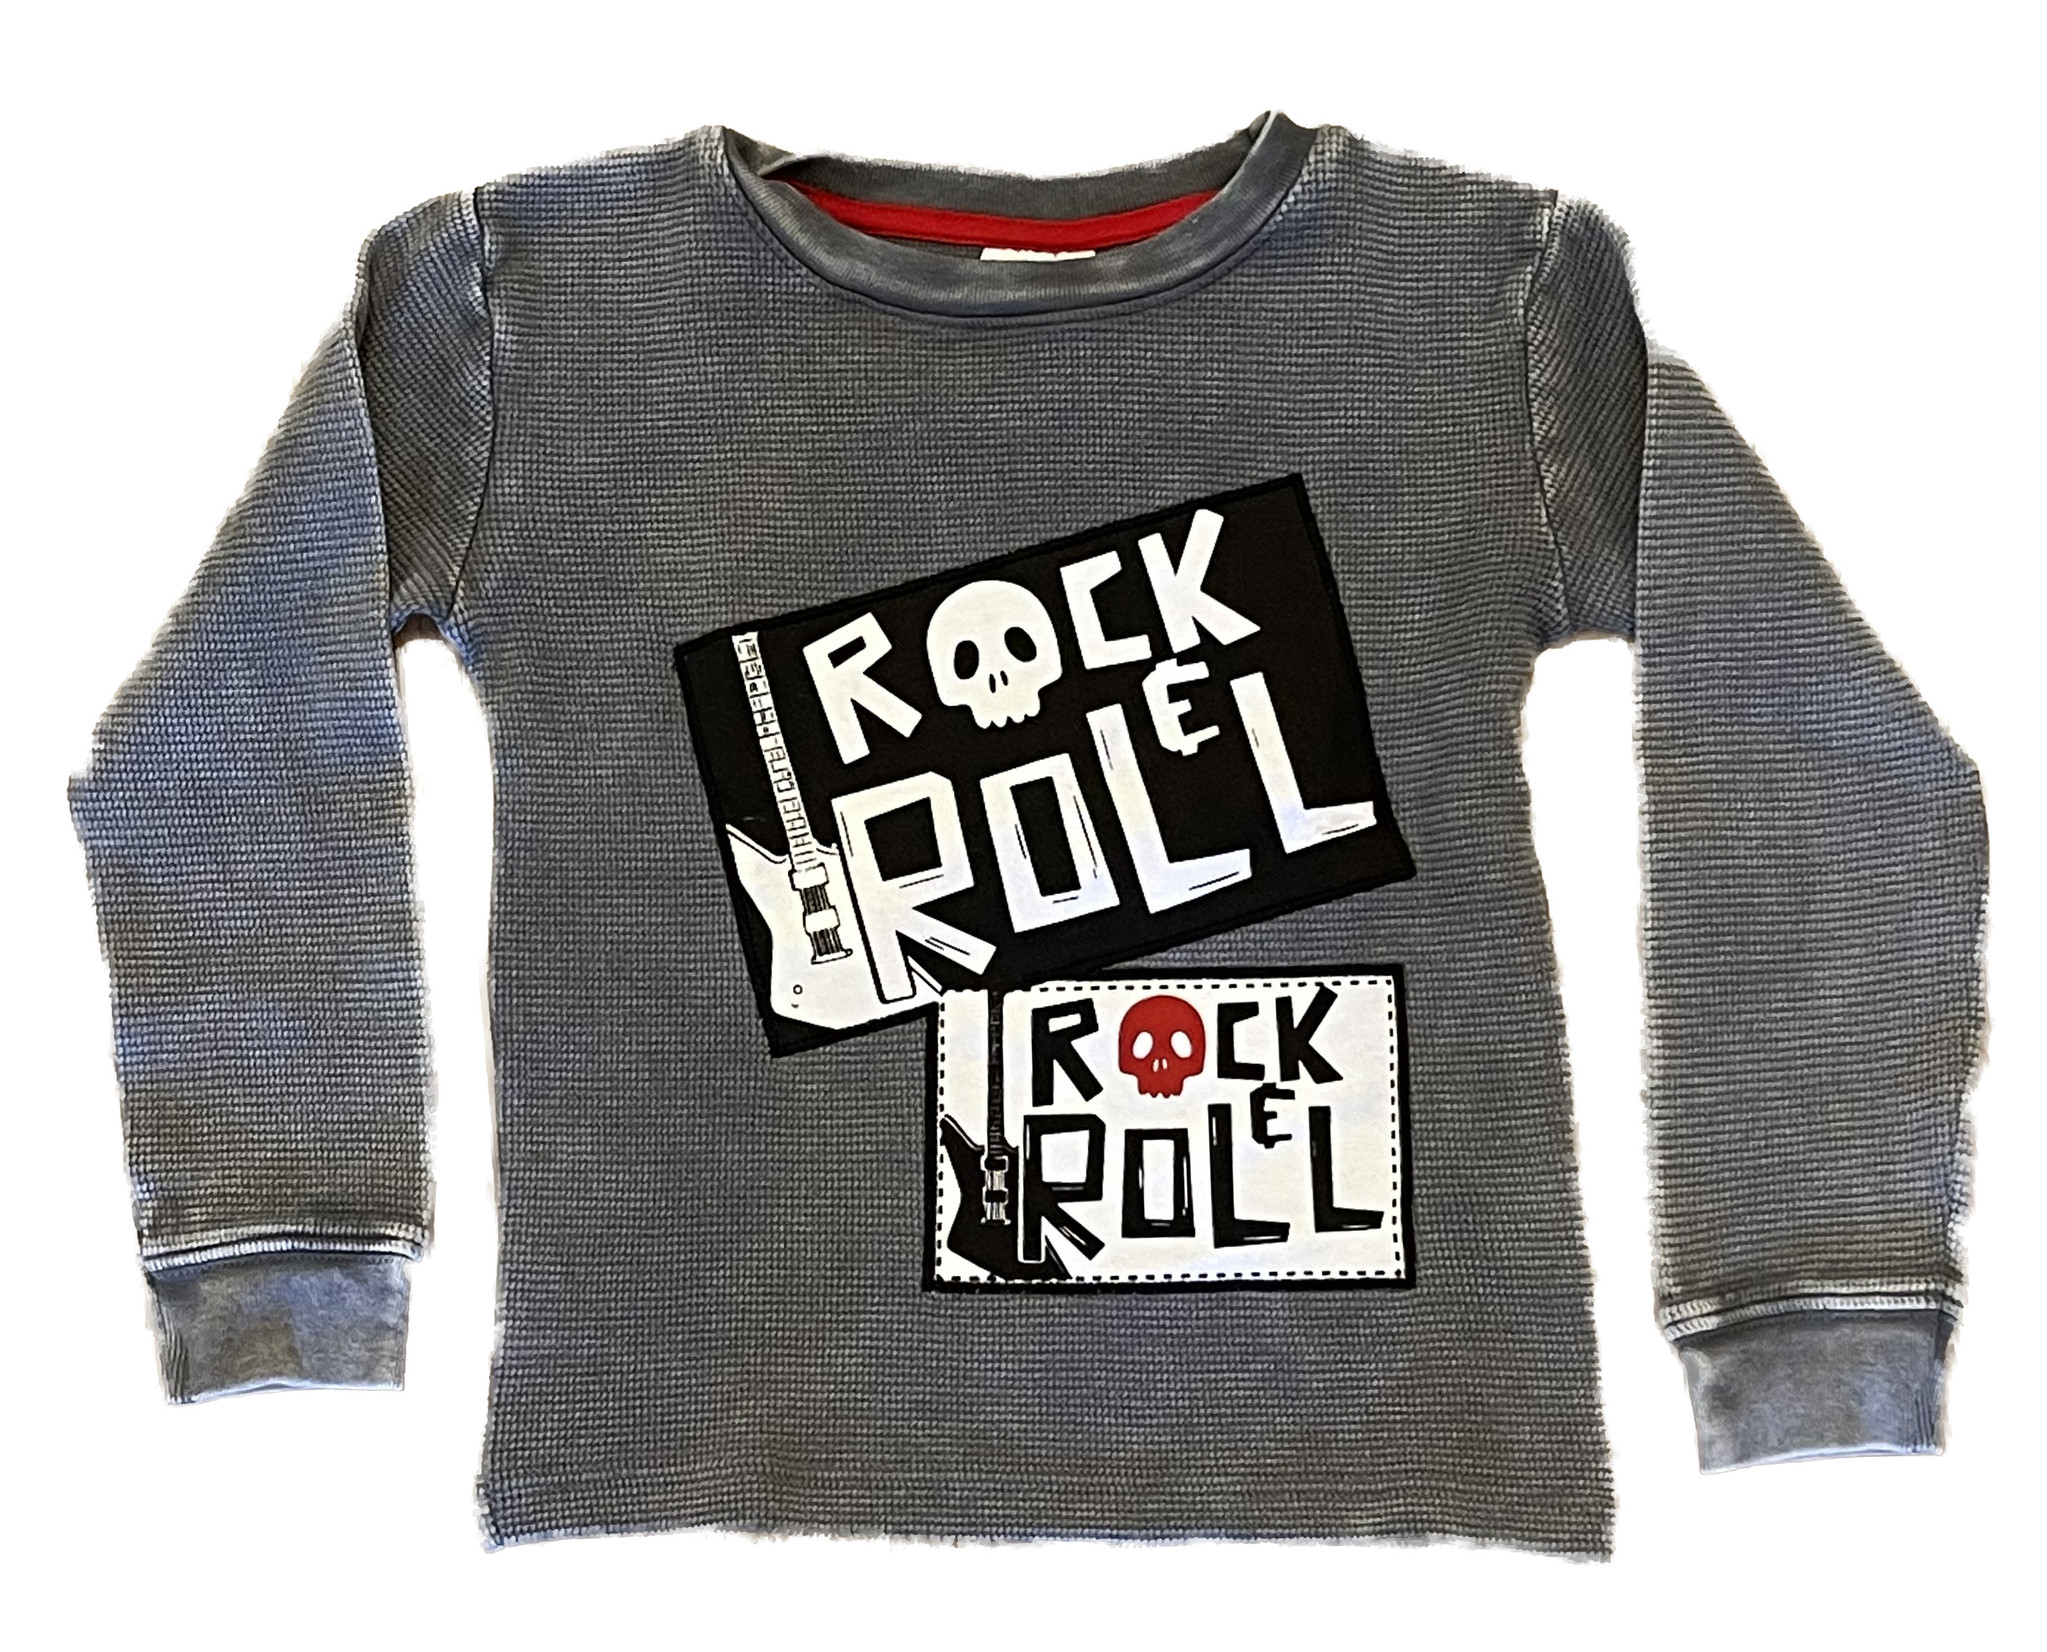 Mish Rock & Roll Infant Thermal